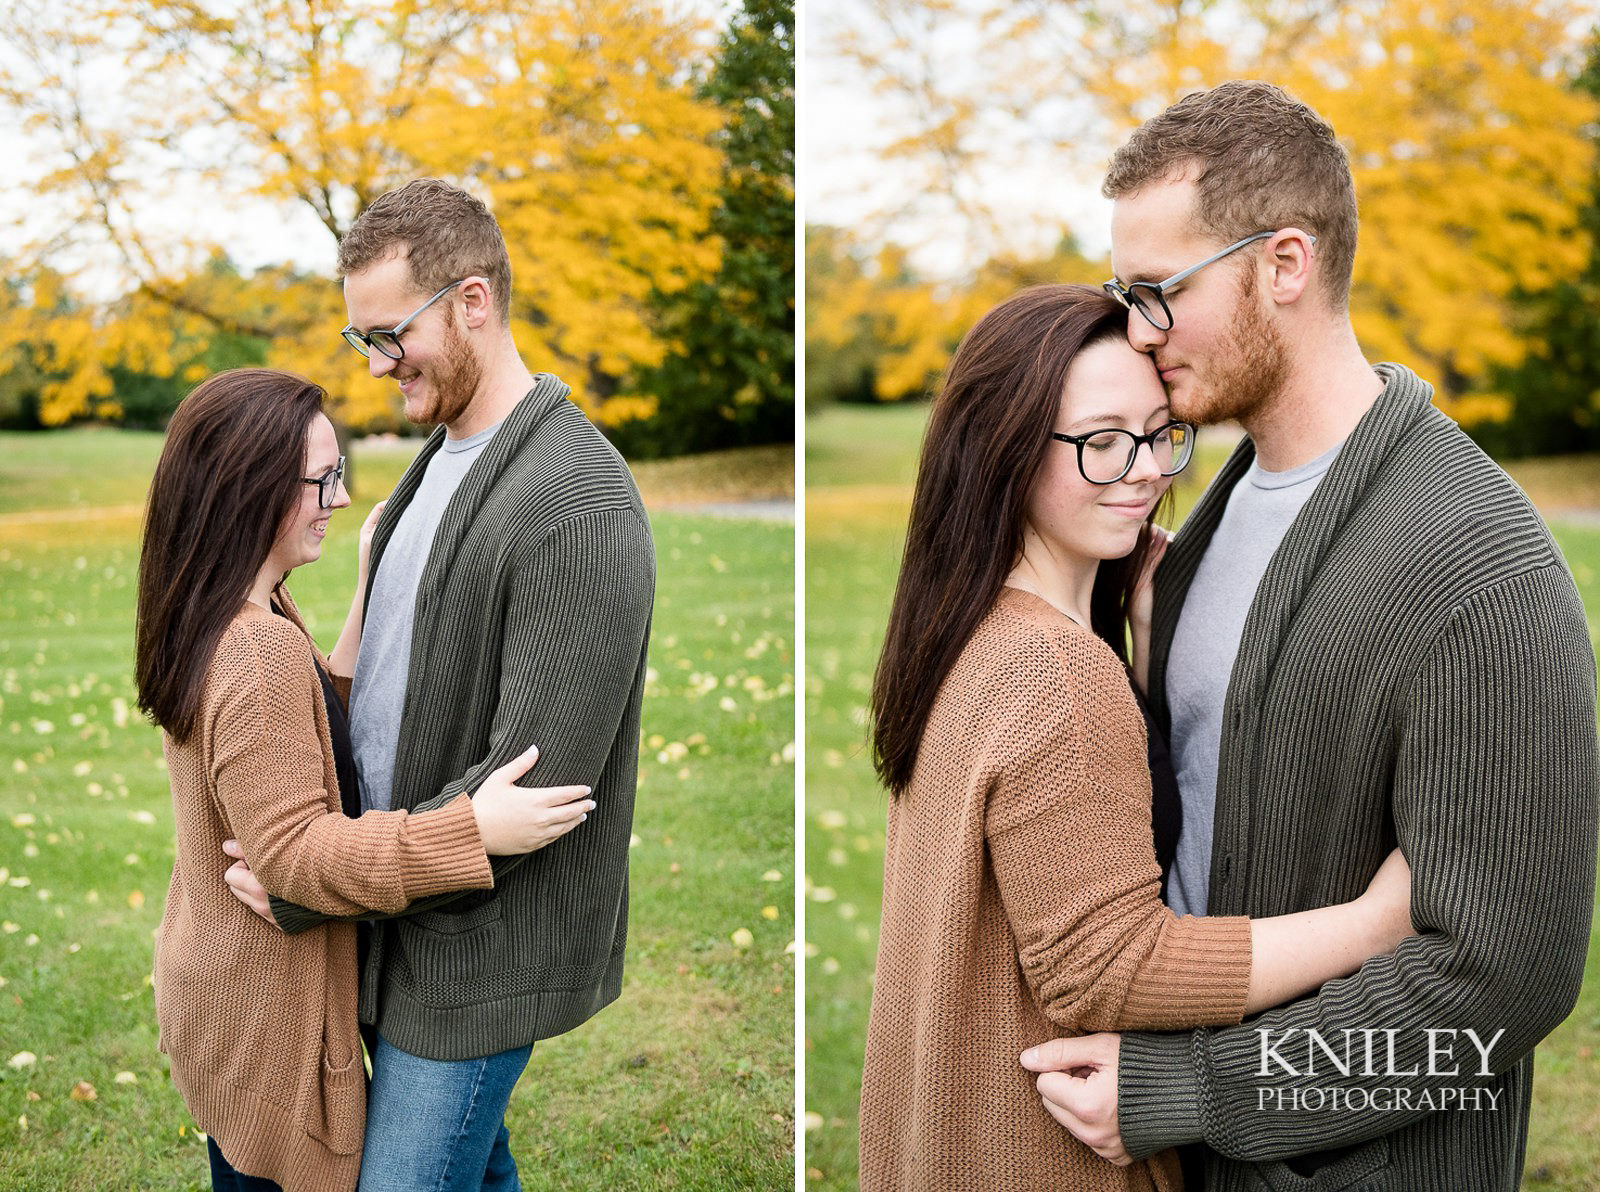 Highland Park Fall Engagement Session - Rochester NY - collage 9.jpg